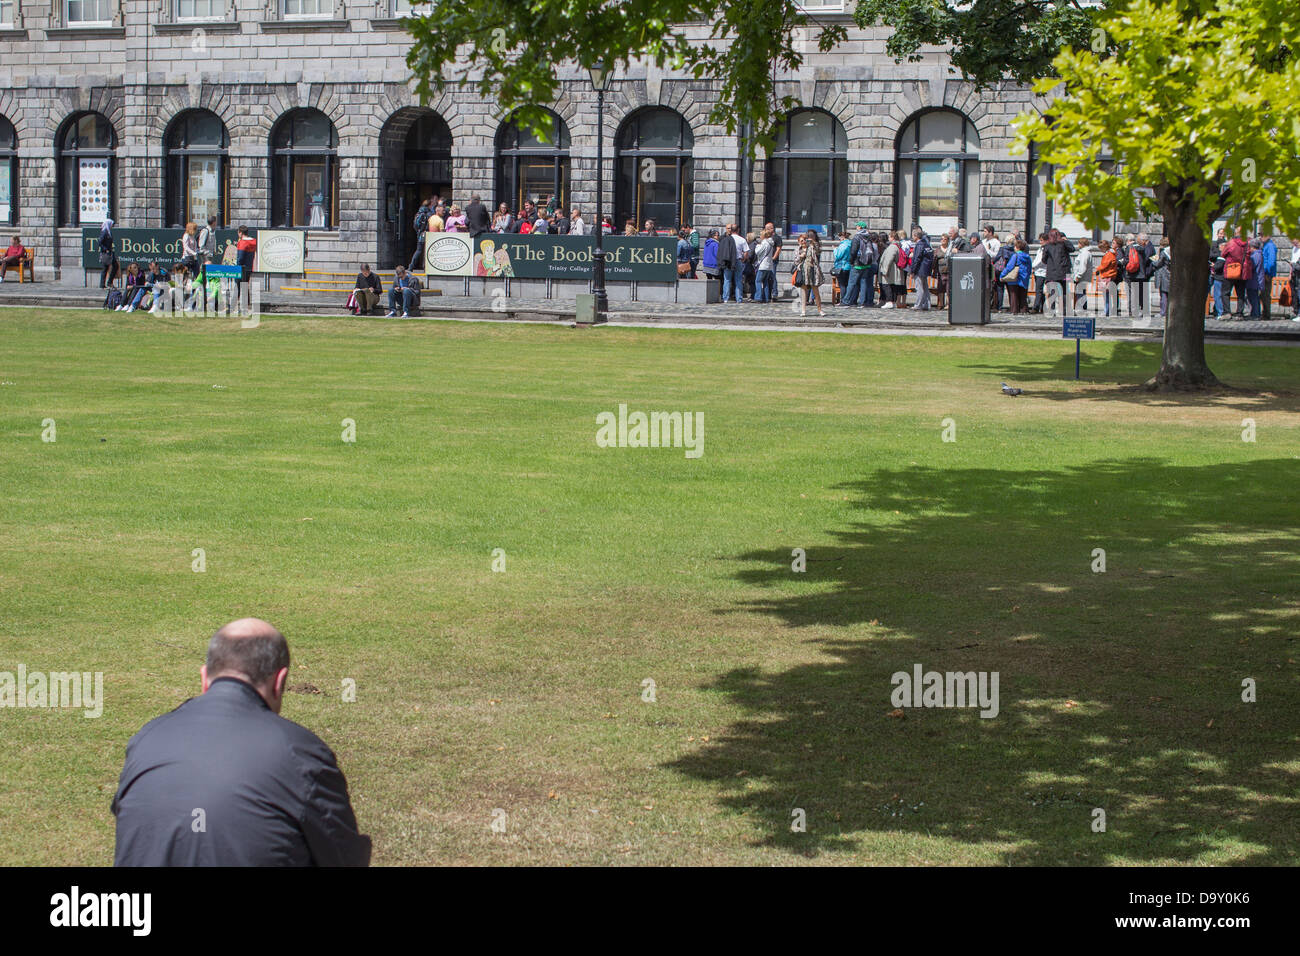 Queue of people waiting to see The Book of Kells, Trinity College, Dublin, Ireland. - Stock Image